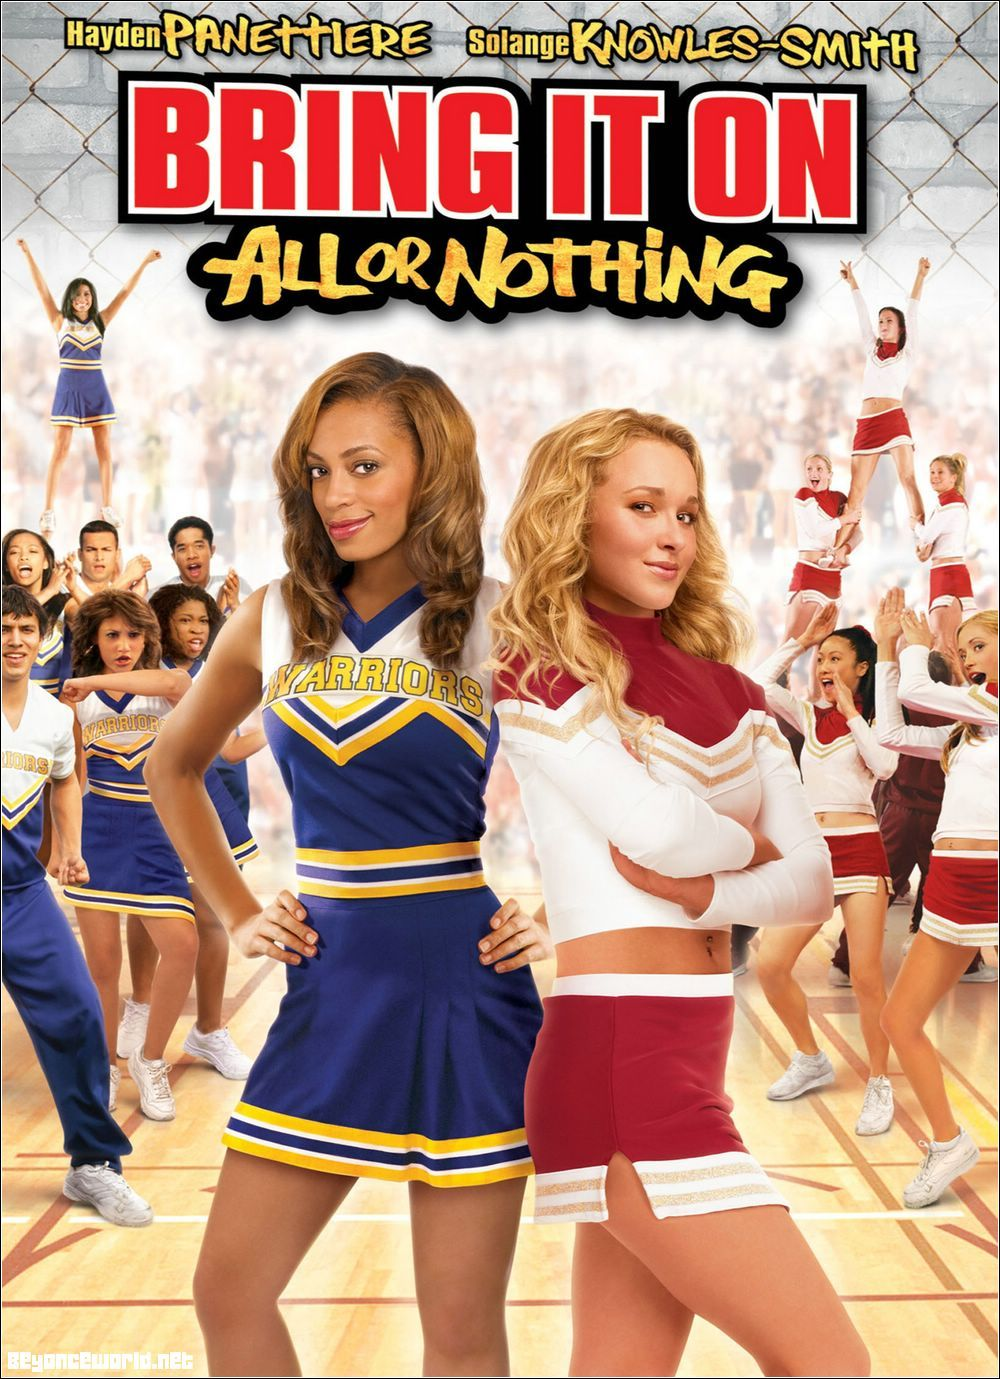 Bring it on all or nothing chickflicks film solange